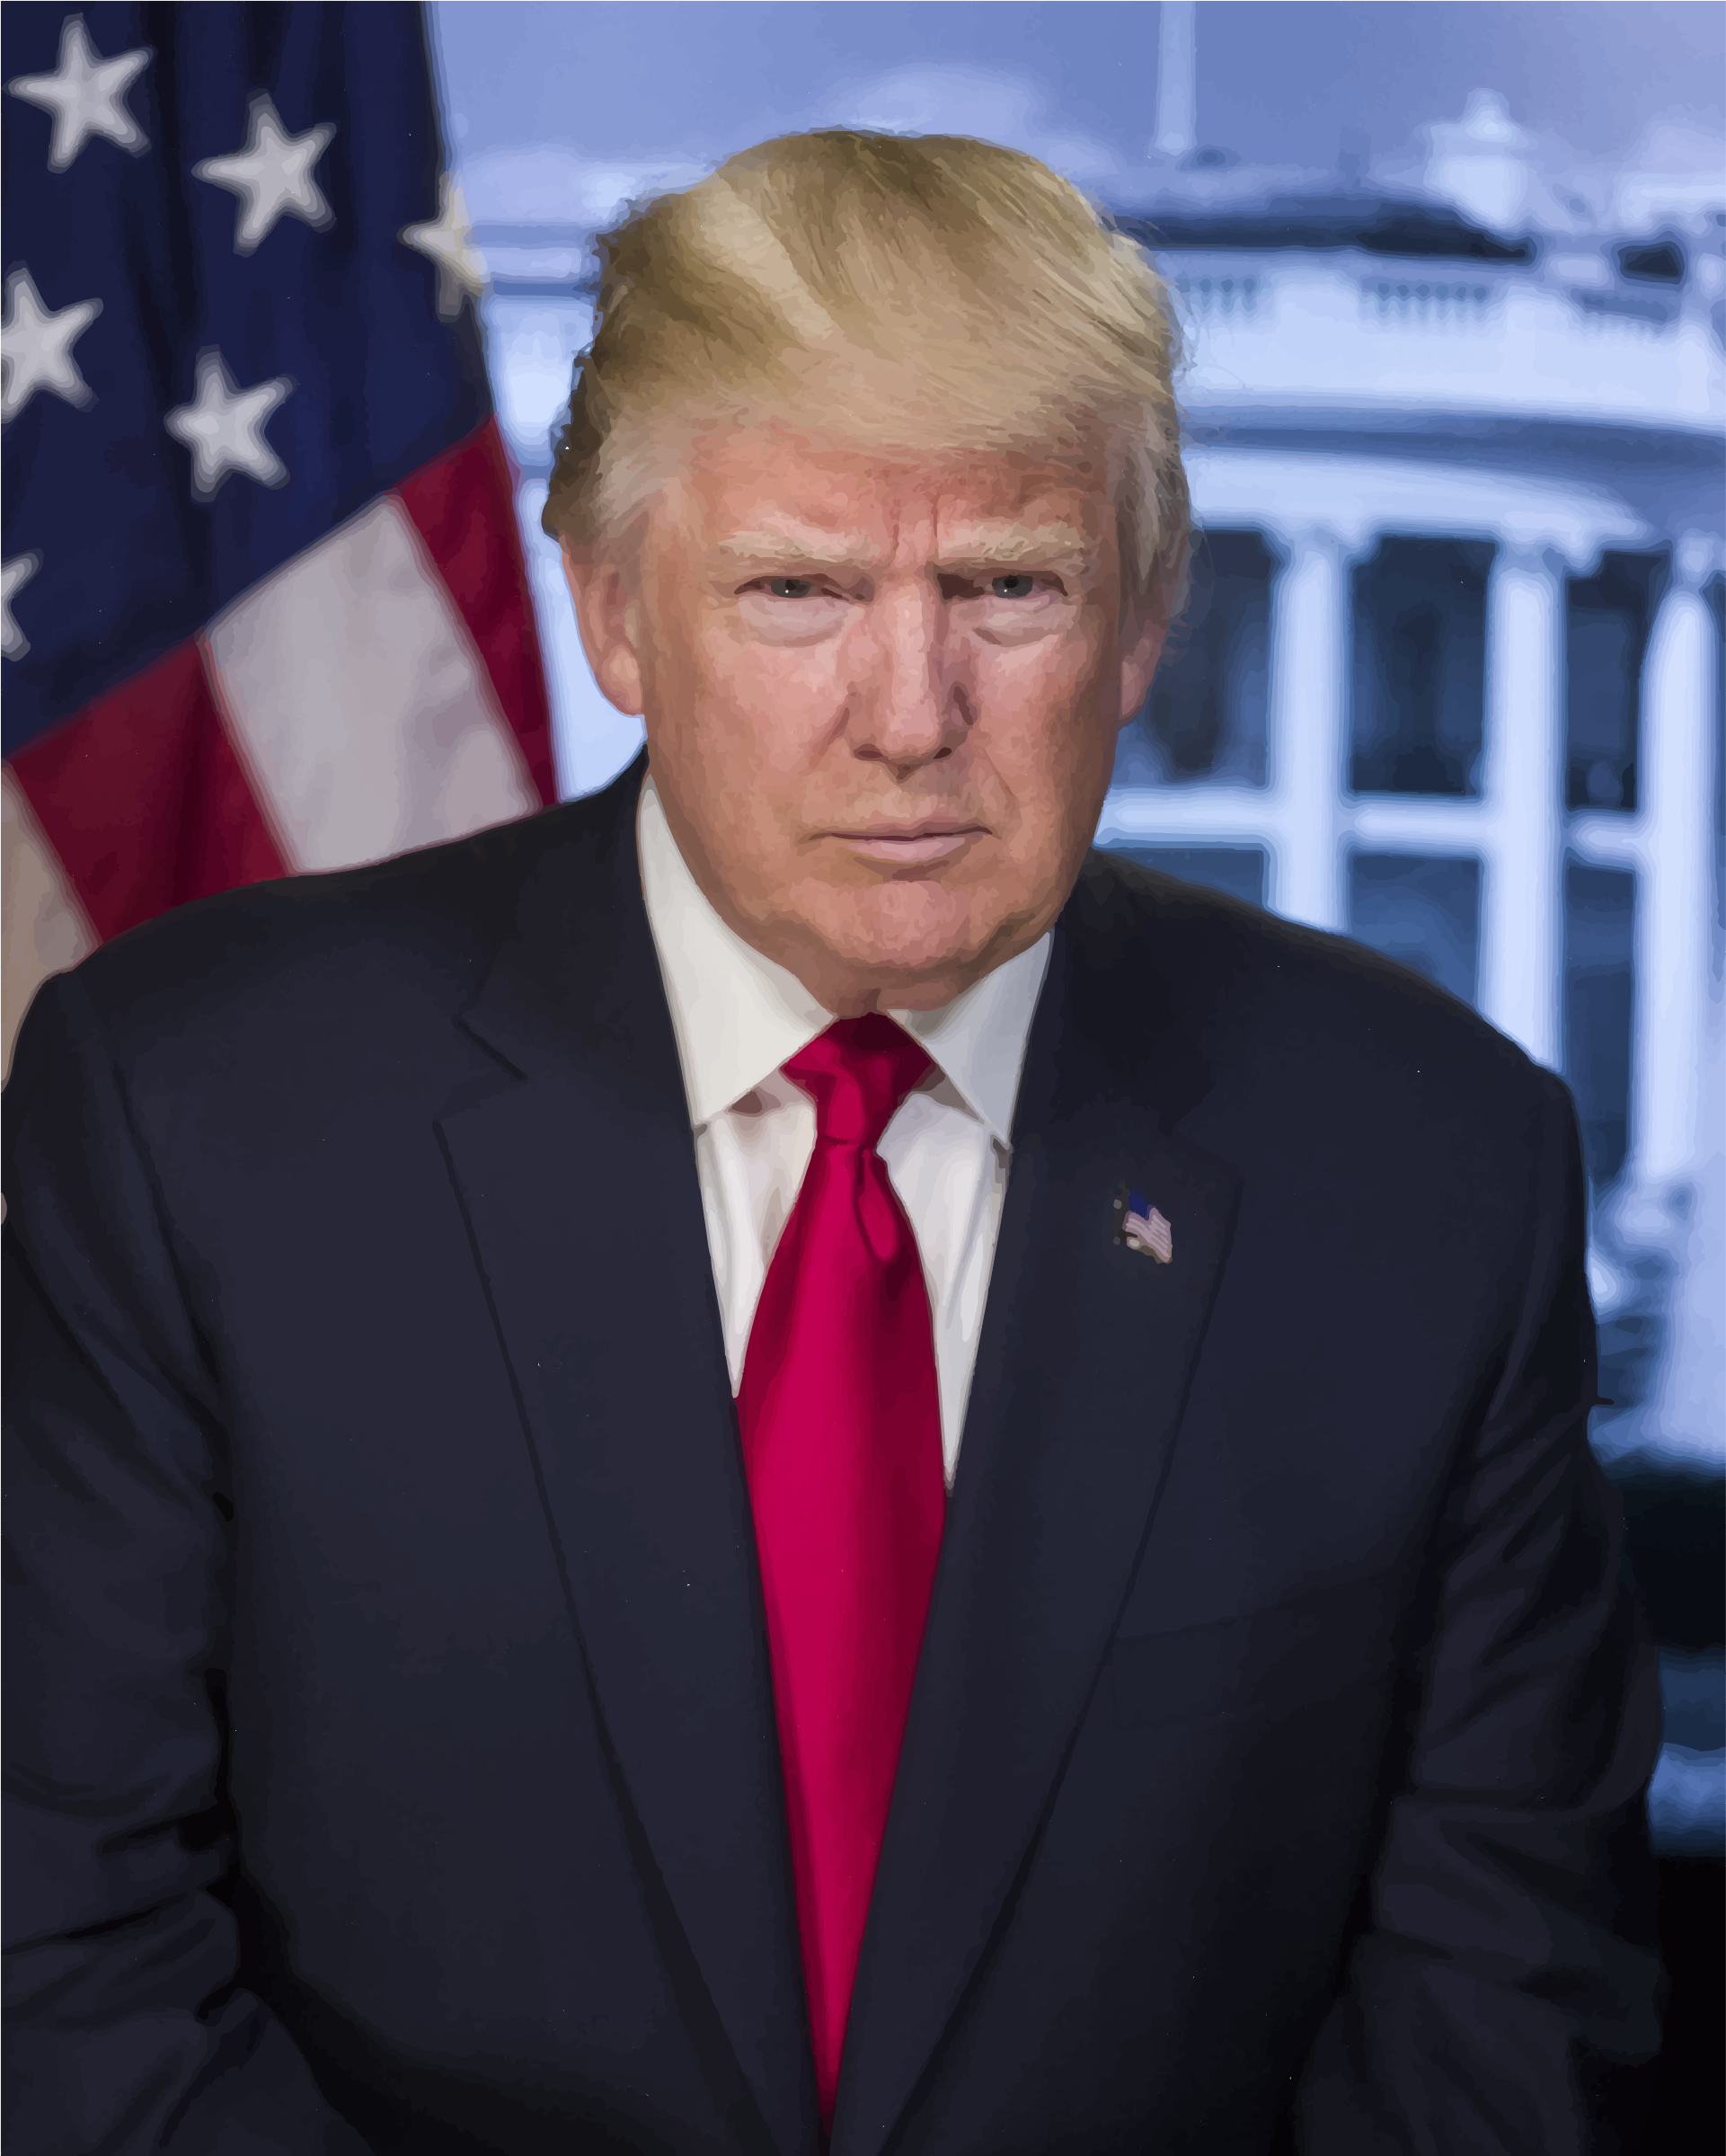 Donald-Trump-Official-White-House-Photograph